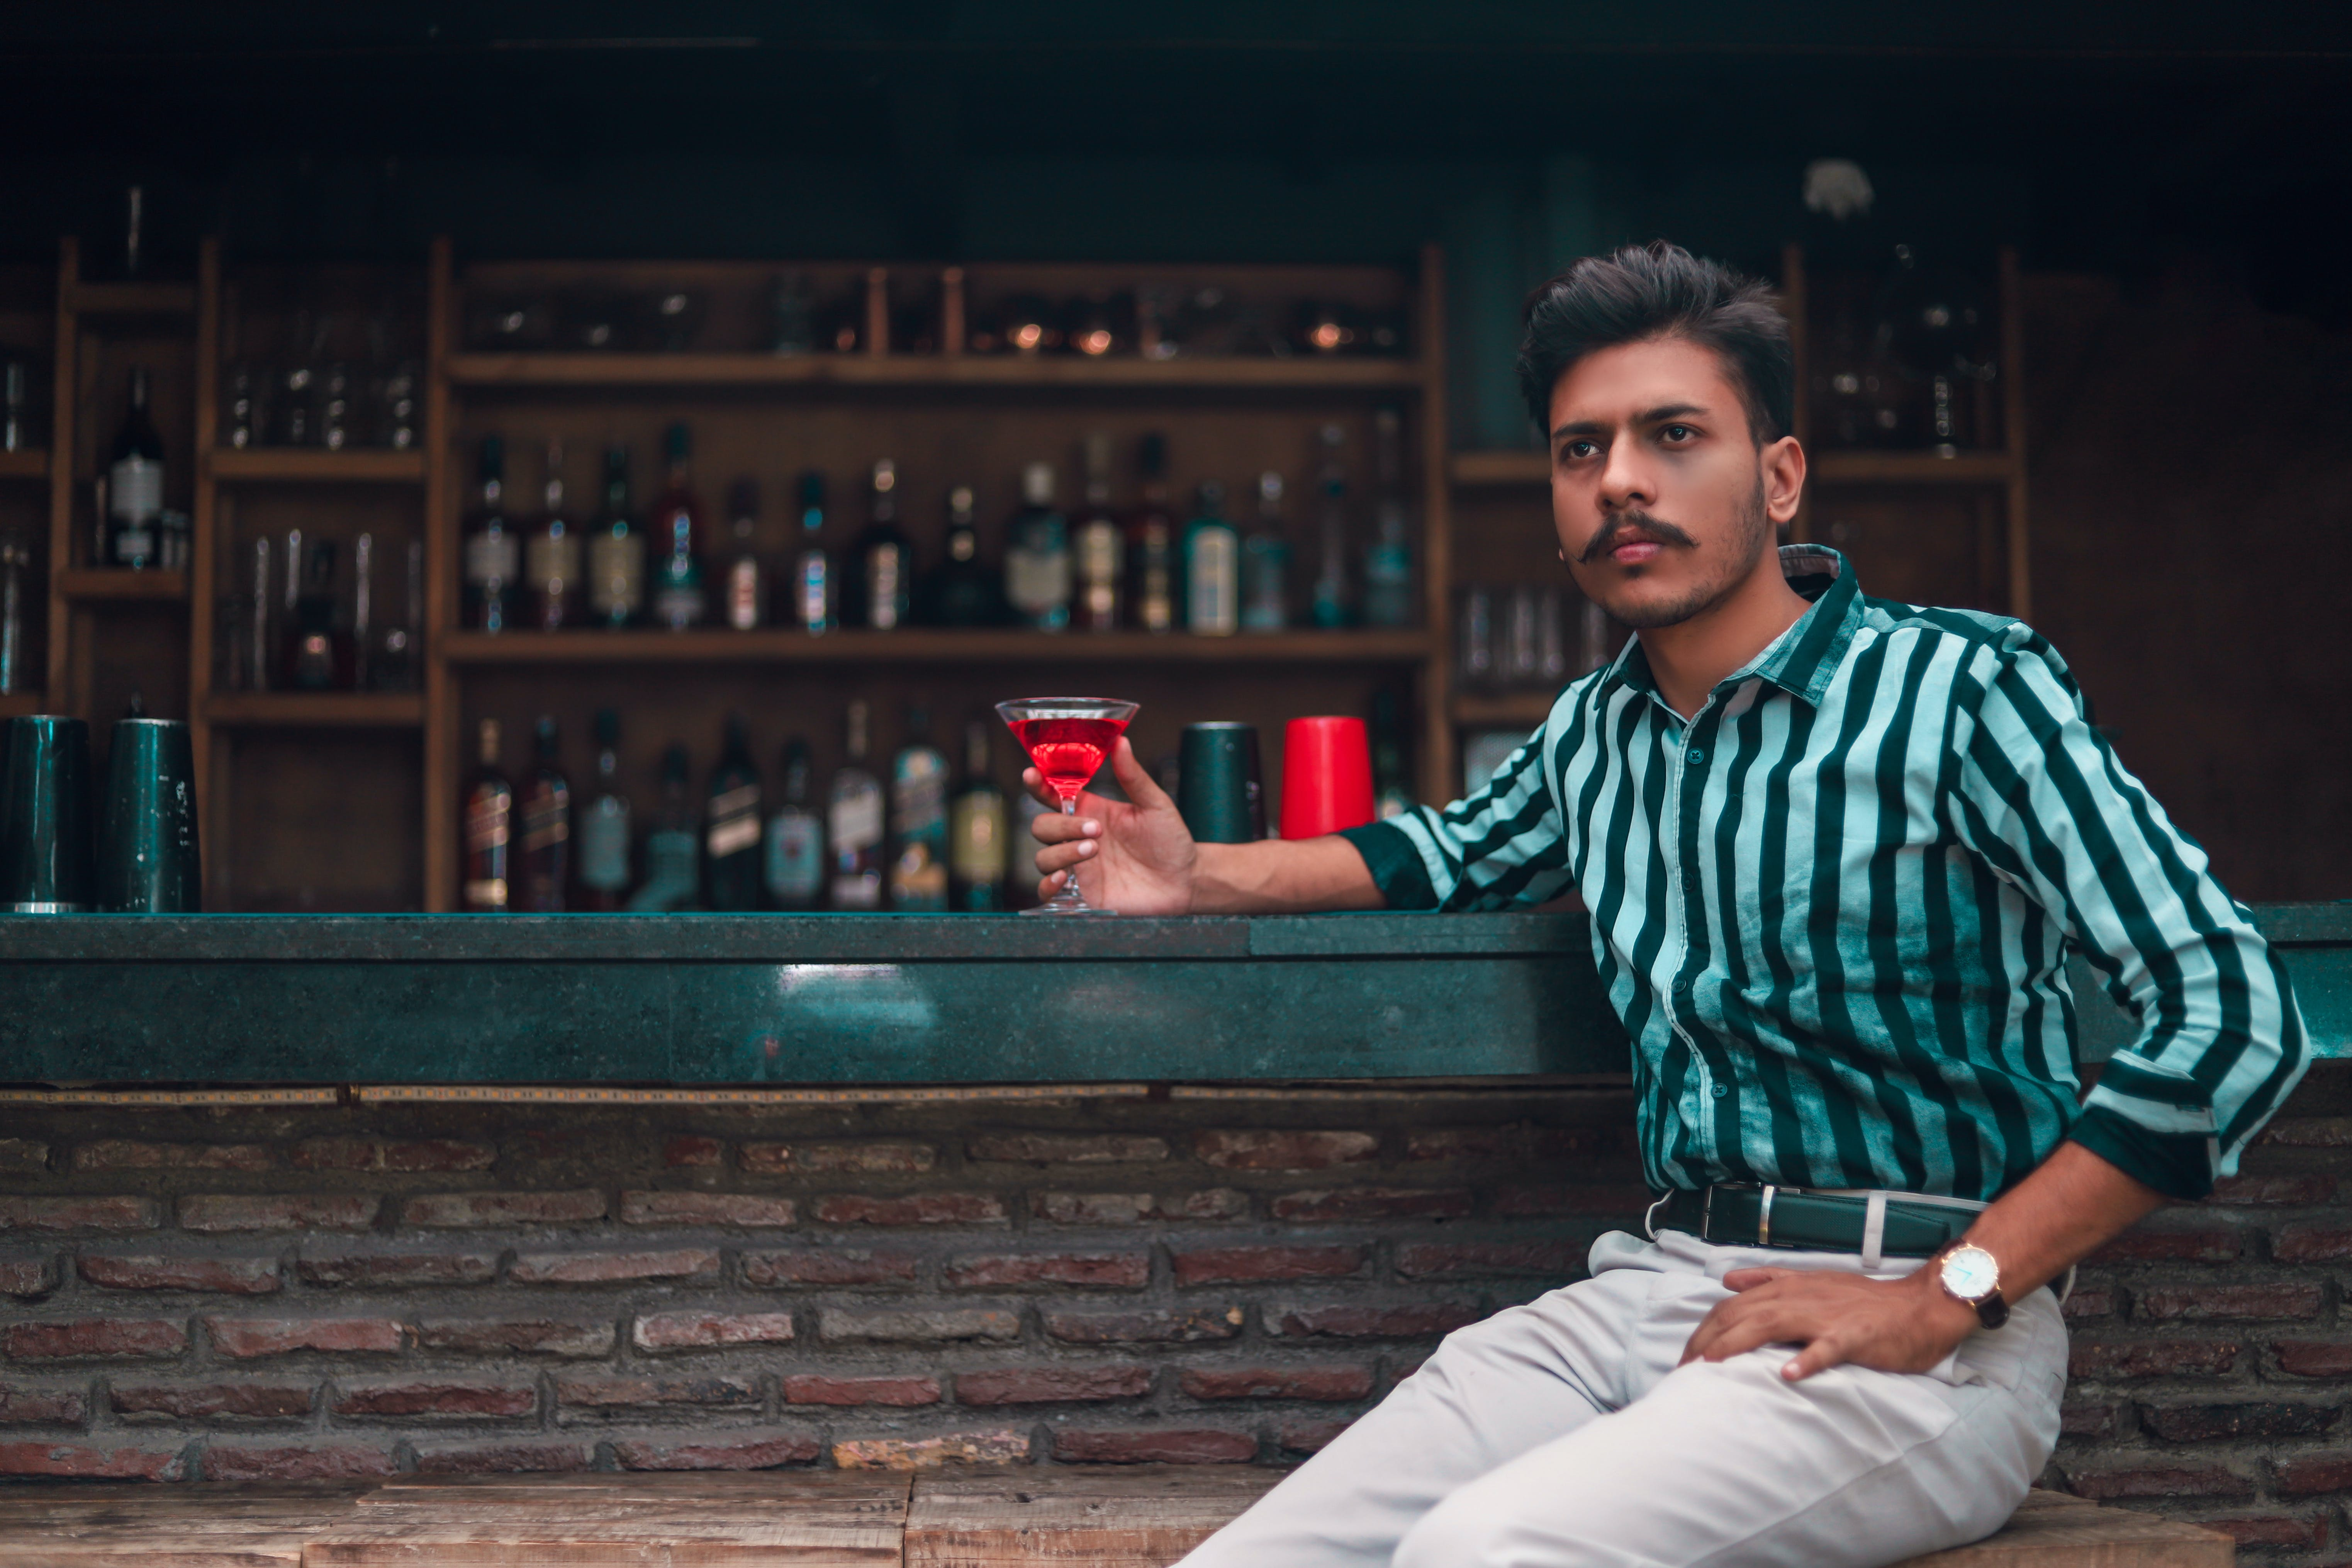 Man Sitting Holding Cocktail Glass